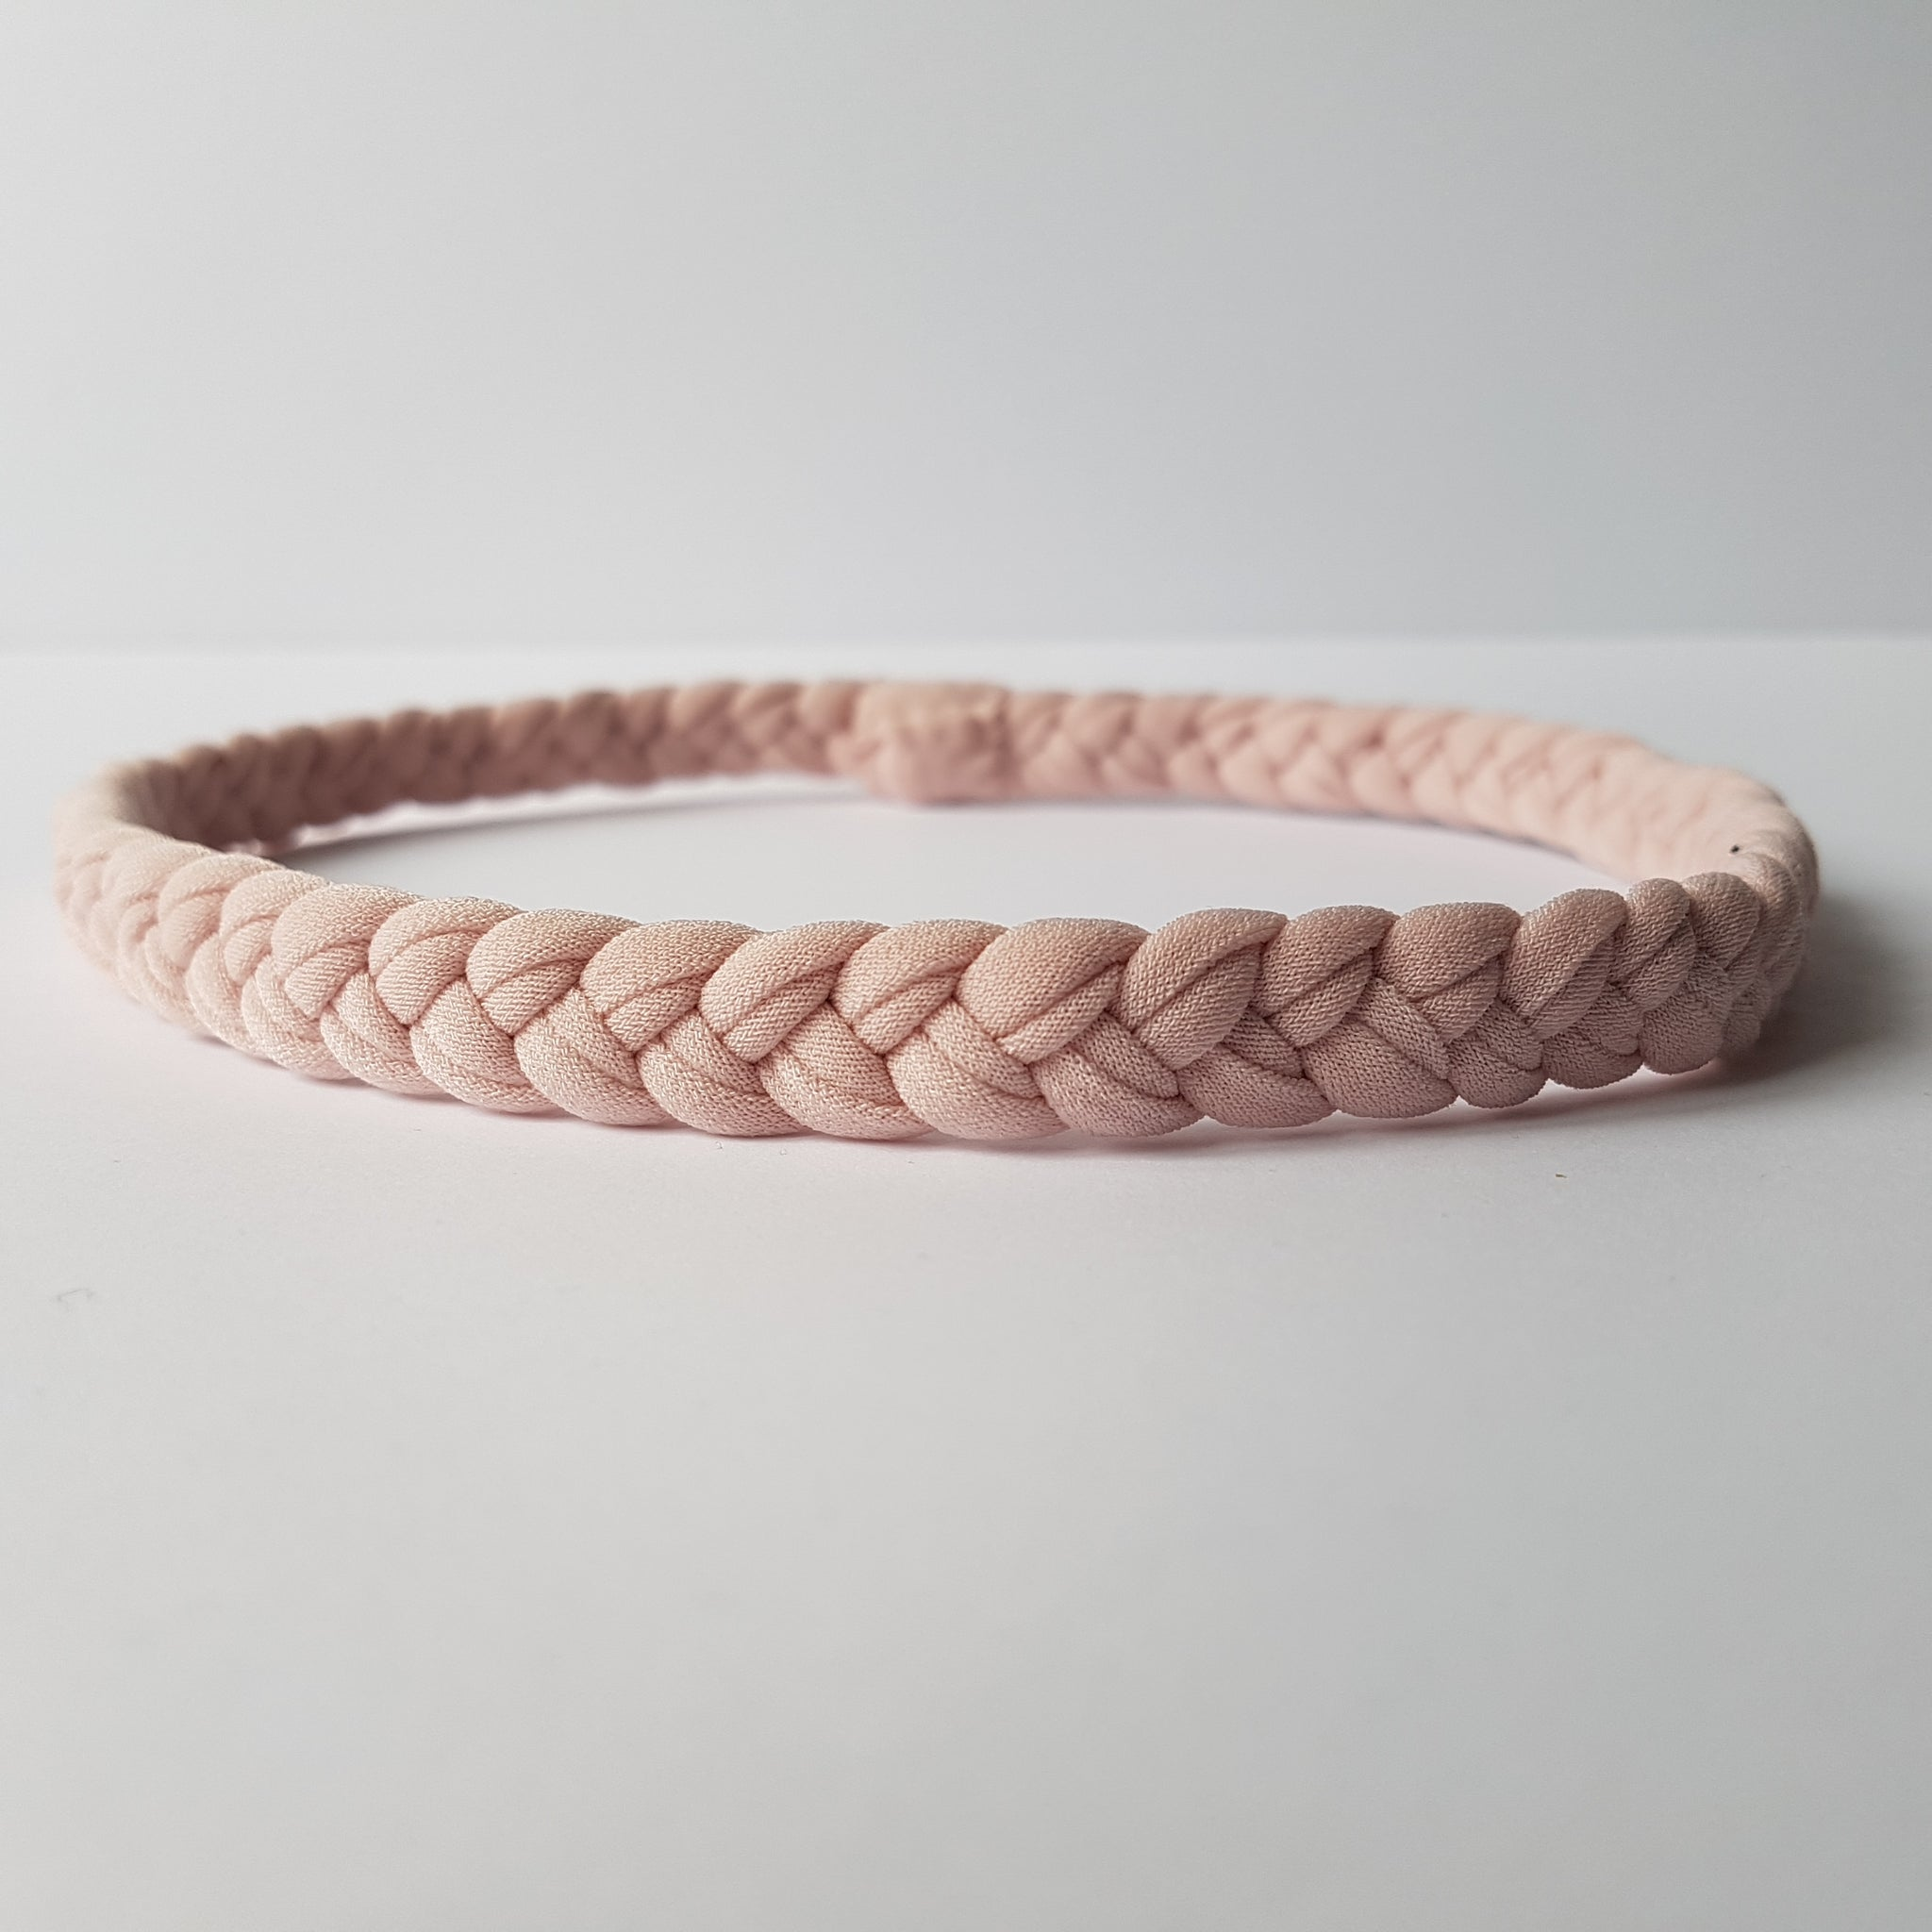 Women's Braided Workout Headband in Blush by Nautically Inspired